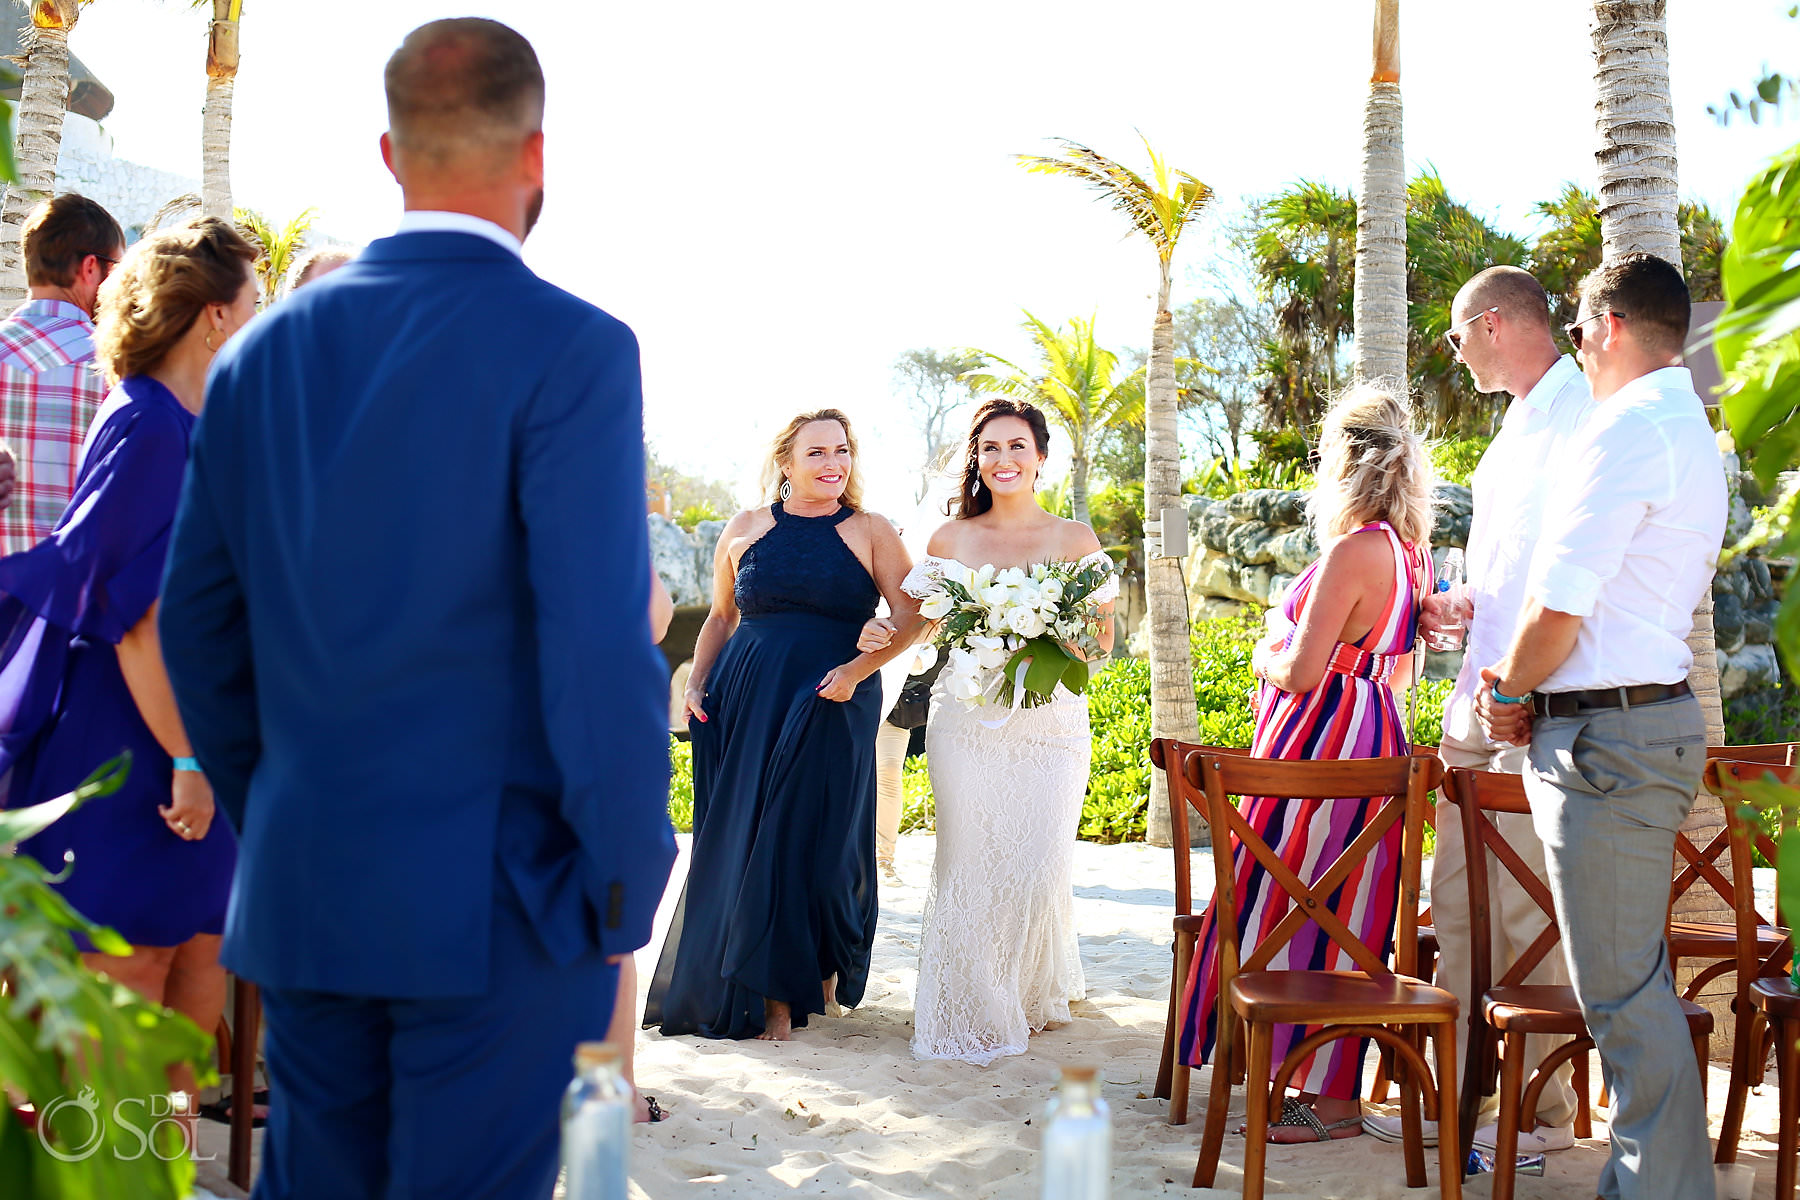 Hotel Xcaret Mexico beach wedding bride entrance Lillian West dress